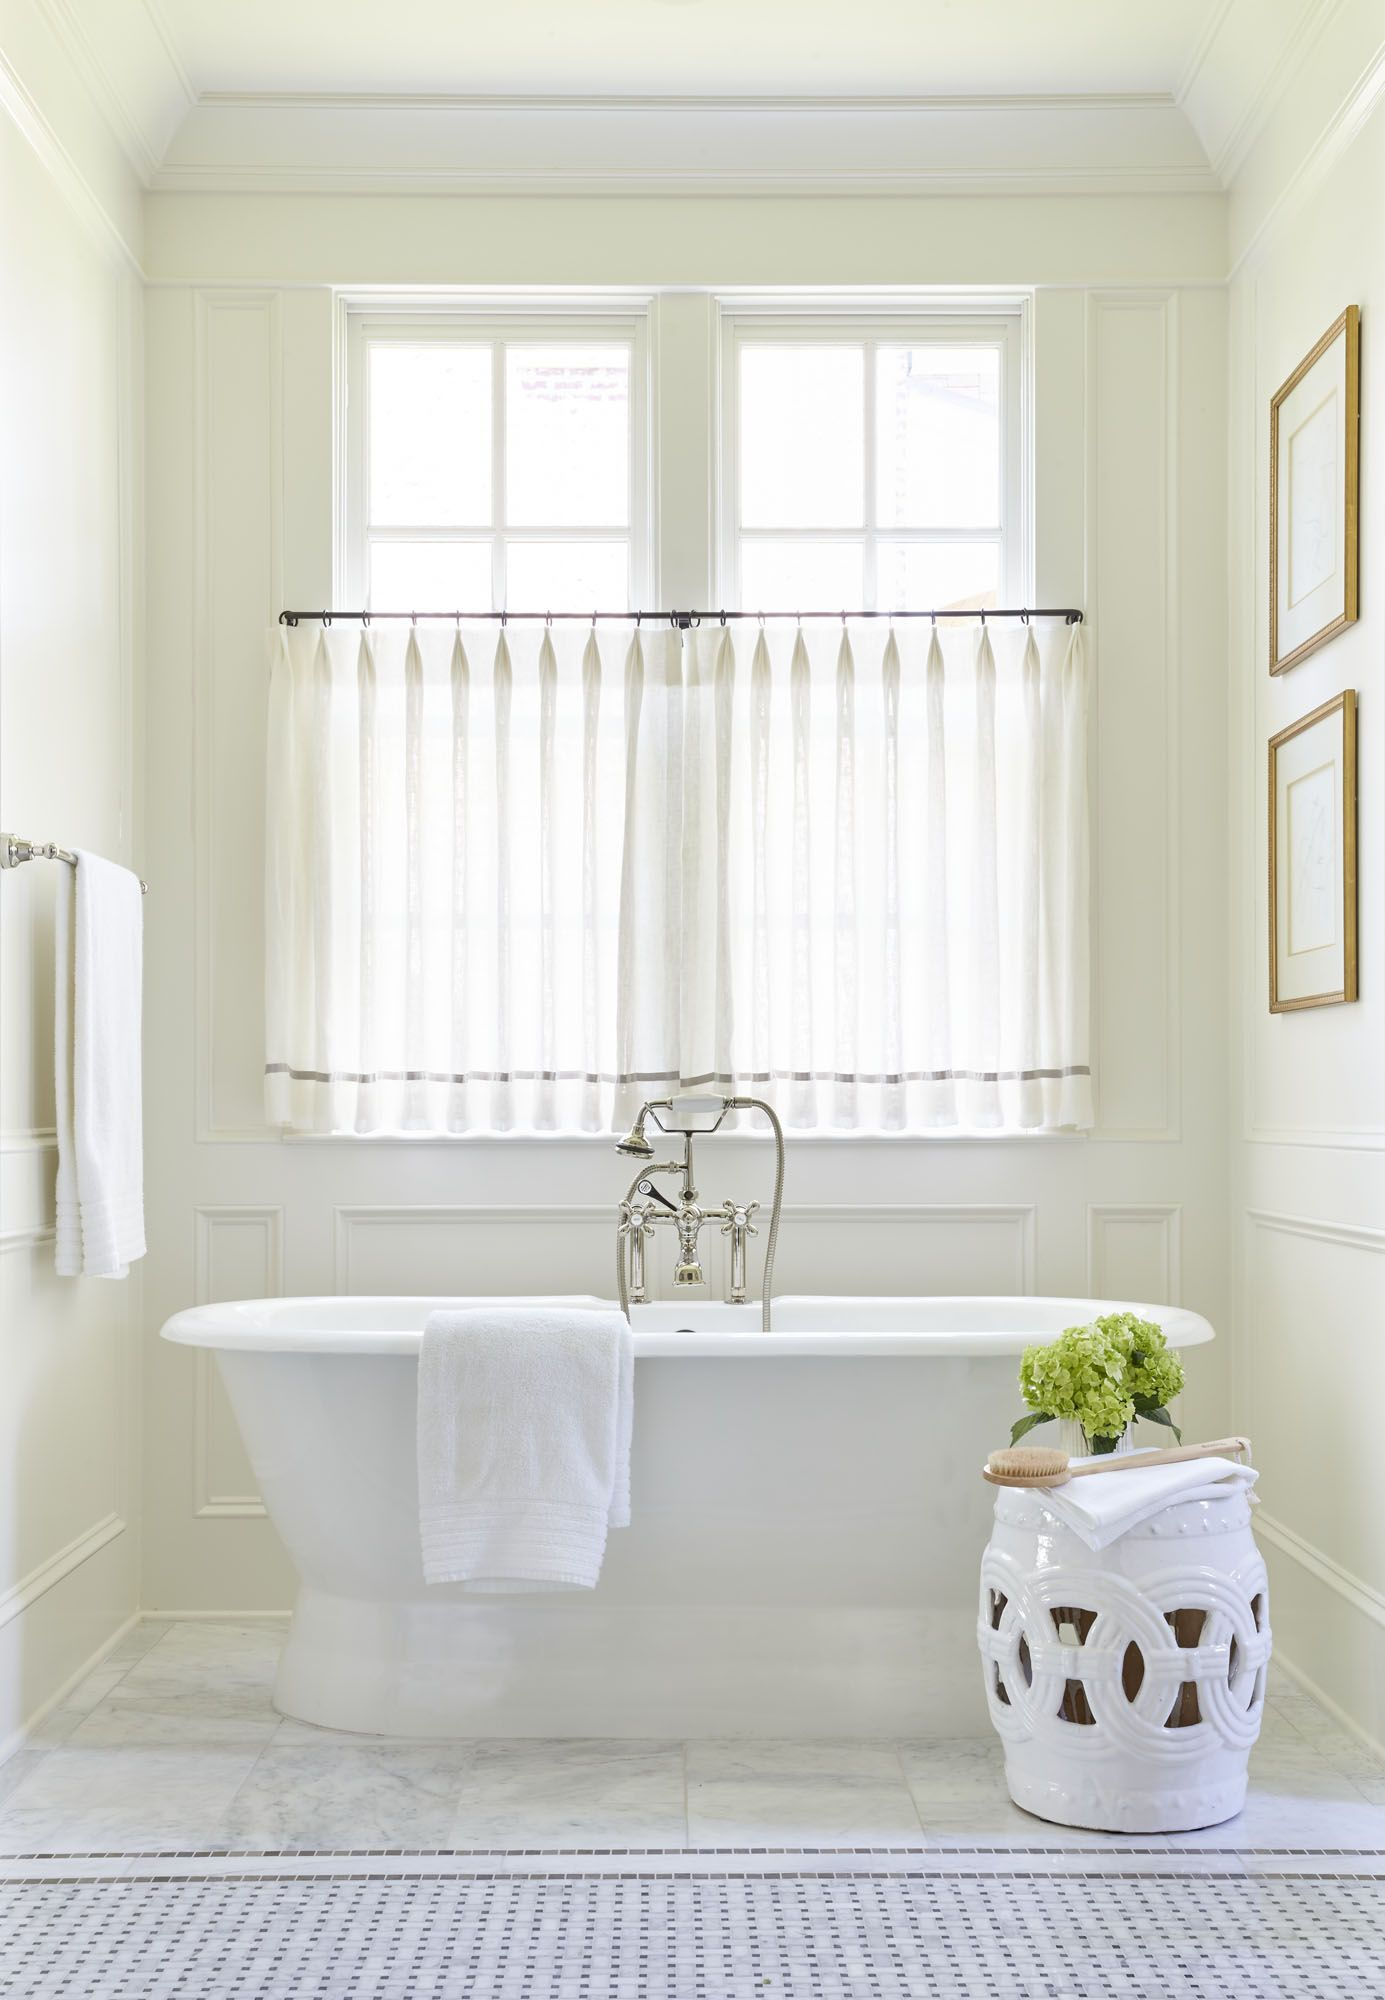 Curtains for the bathroom - The Highlands Sarah Bartholomew